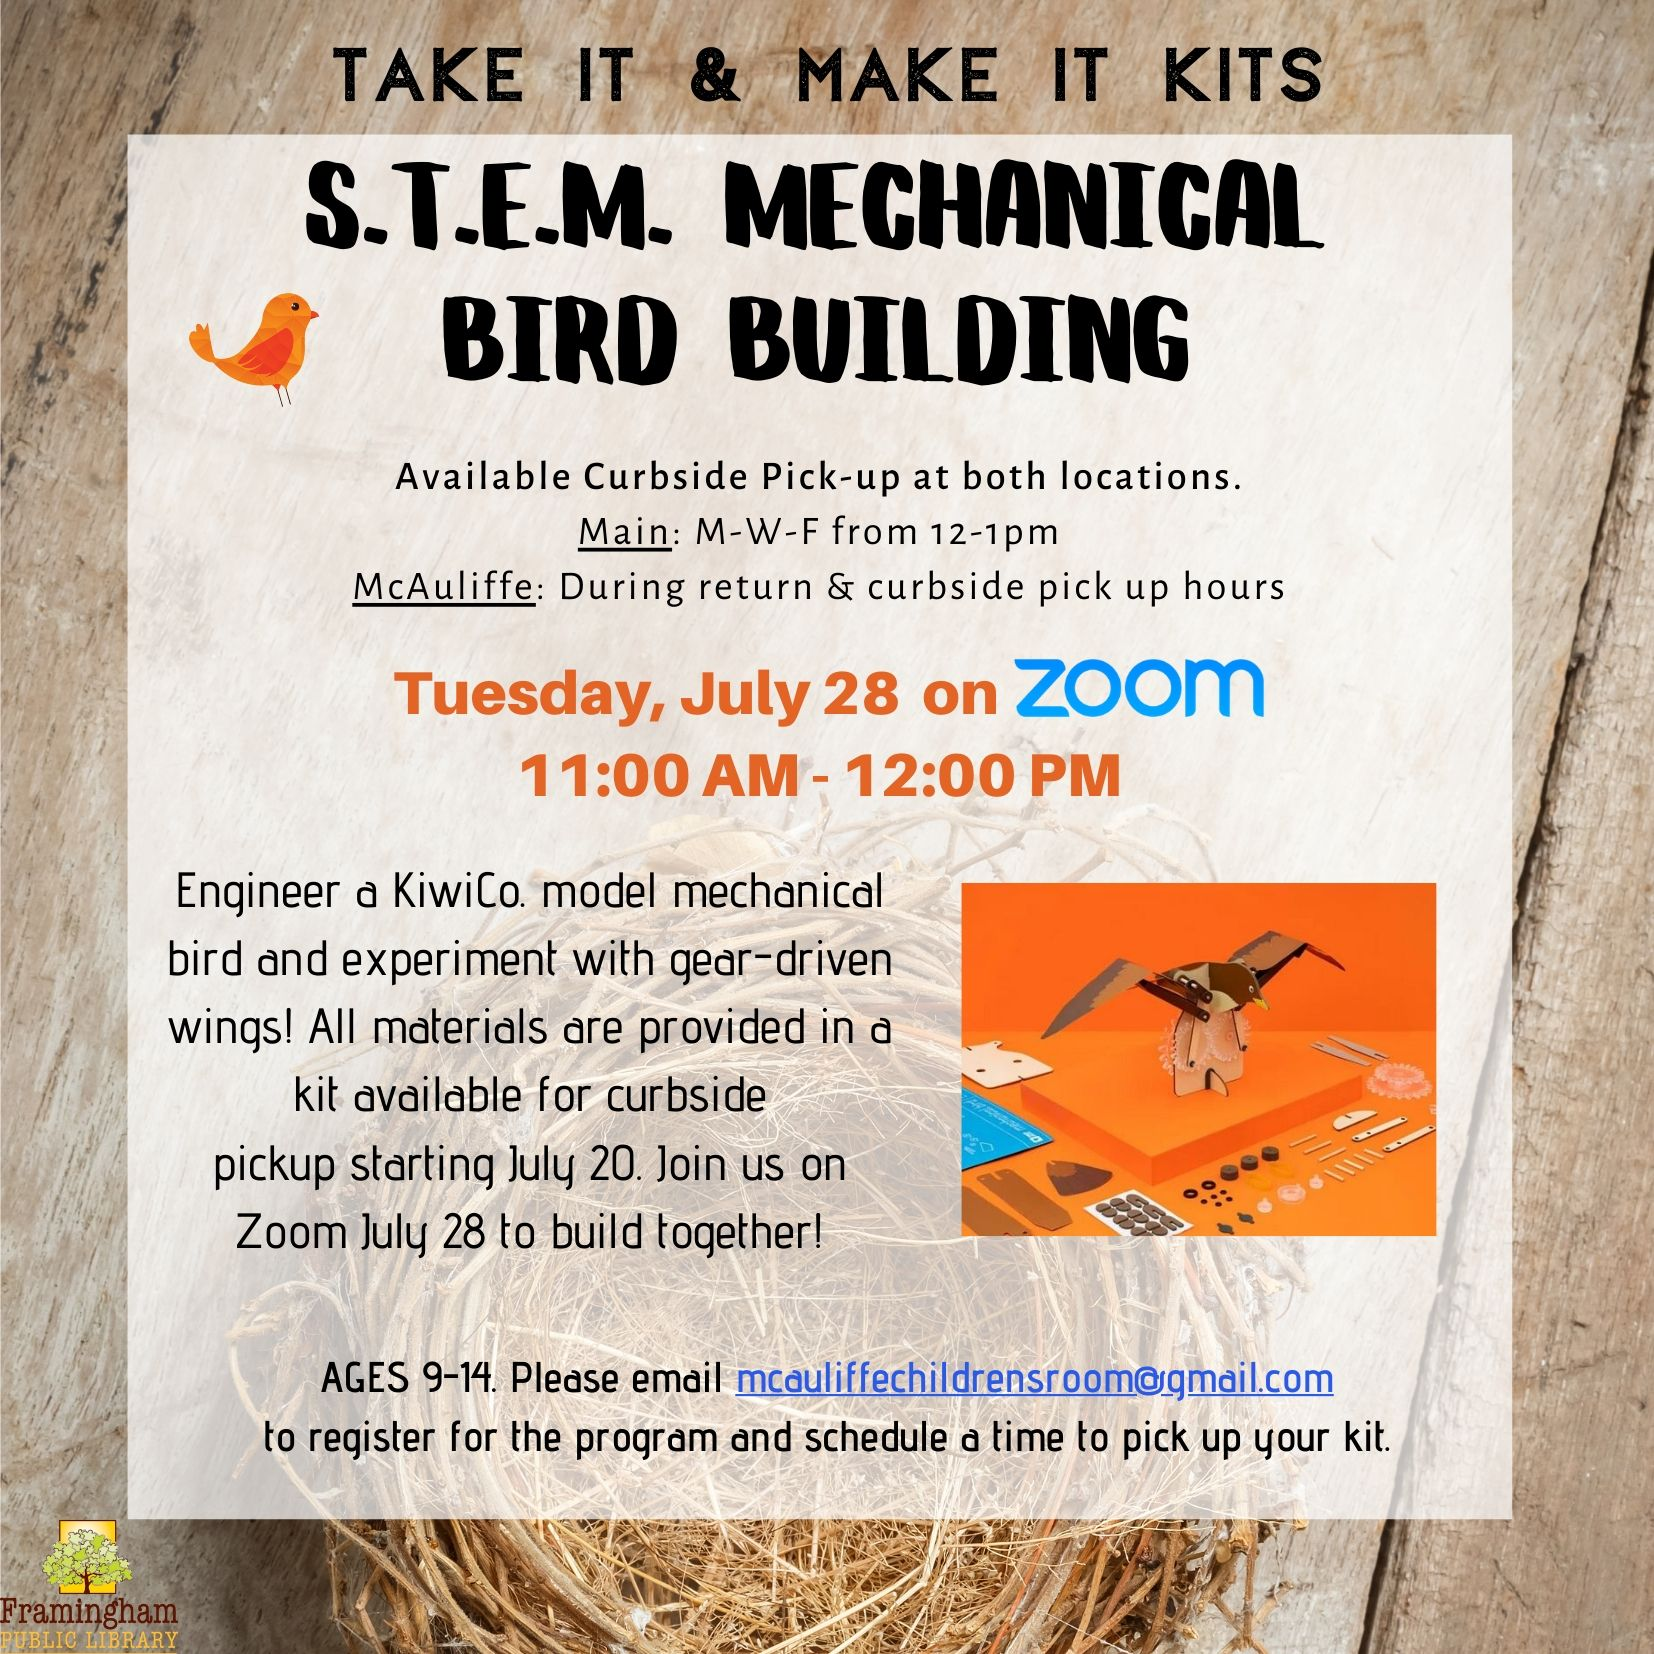 Take and Make Kit: S.T.E.M. Mechanical Bird Building thumbnail Photo